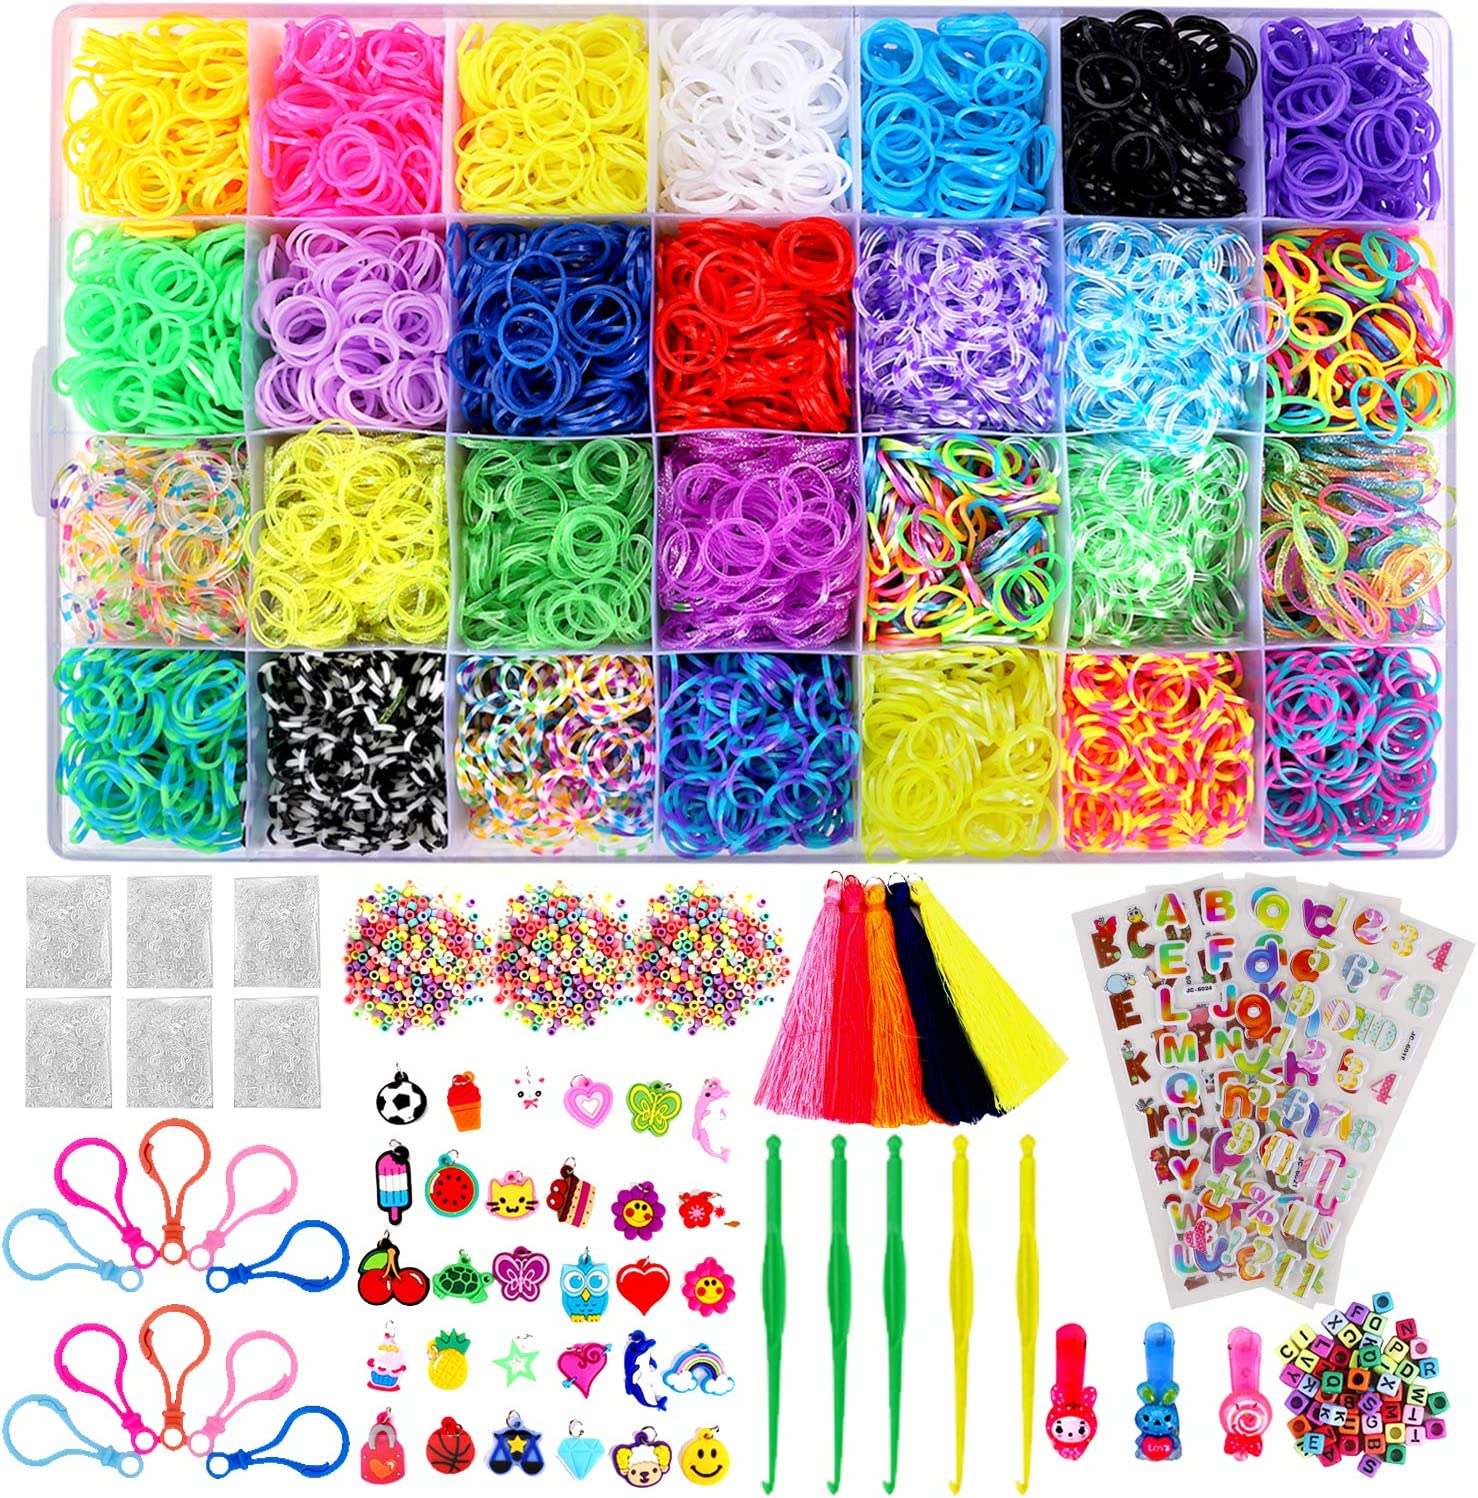 Rubber band kit with colored rubber bands, stickers and other accessories.